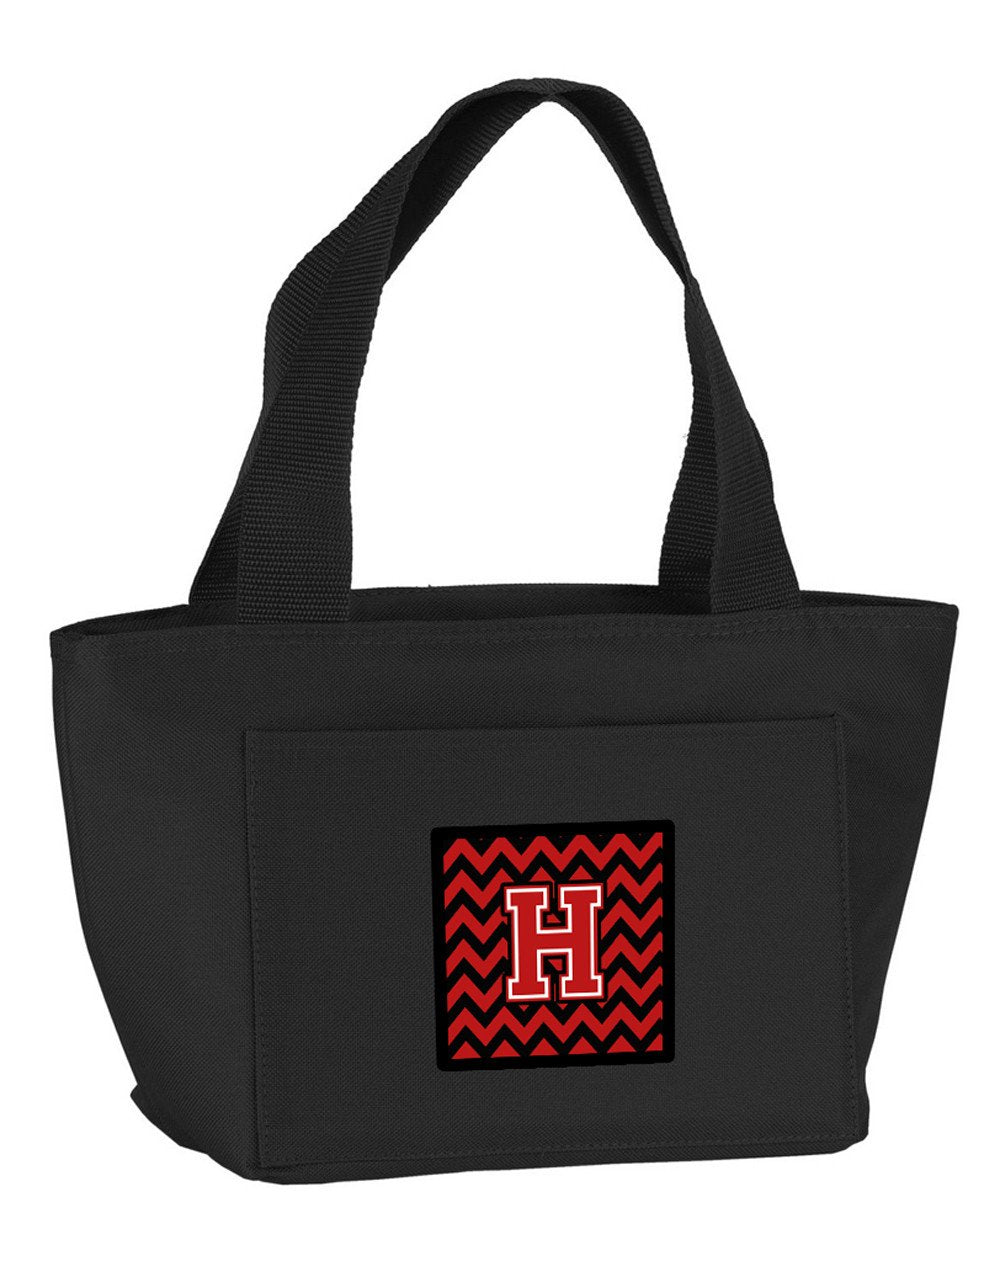 Letter H Chevron Black and Red   Lunch Bag CJ1047-HBK-8808 by Caroline's Treasures